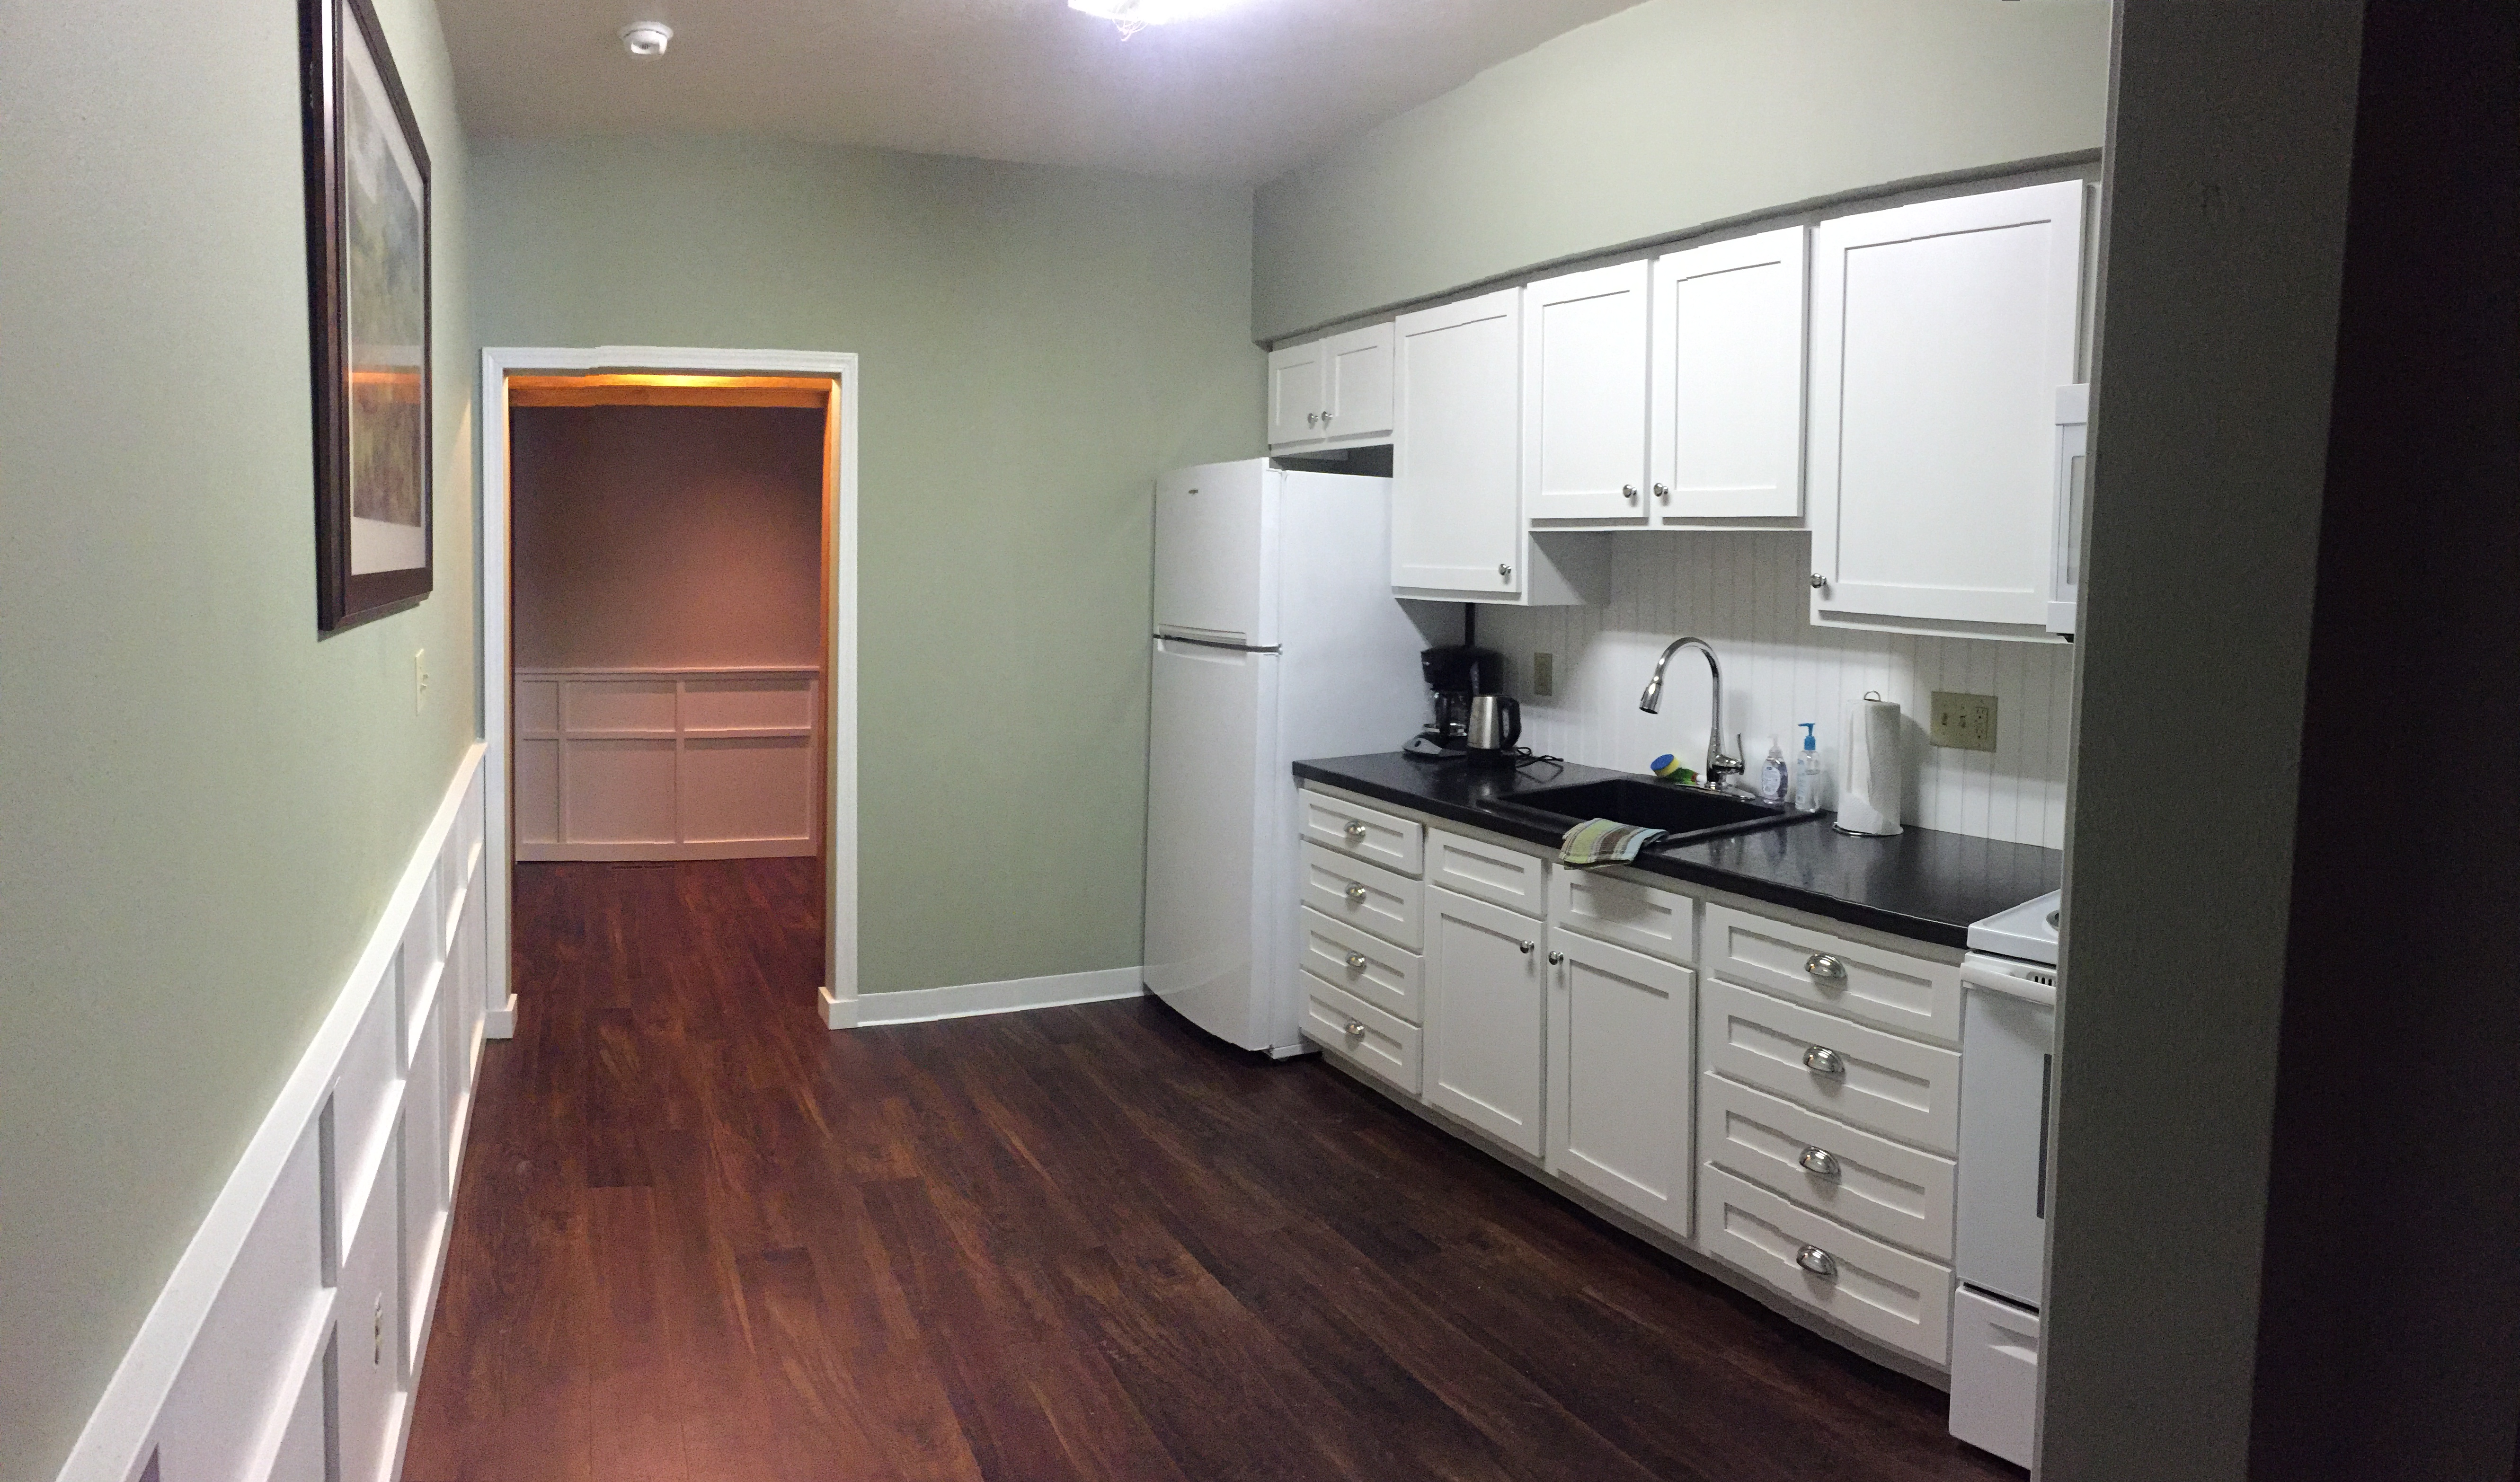 Office/Kitchen Remodel at St. Mark